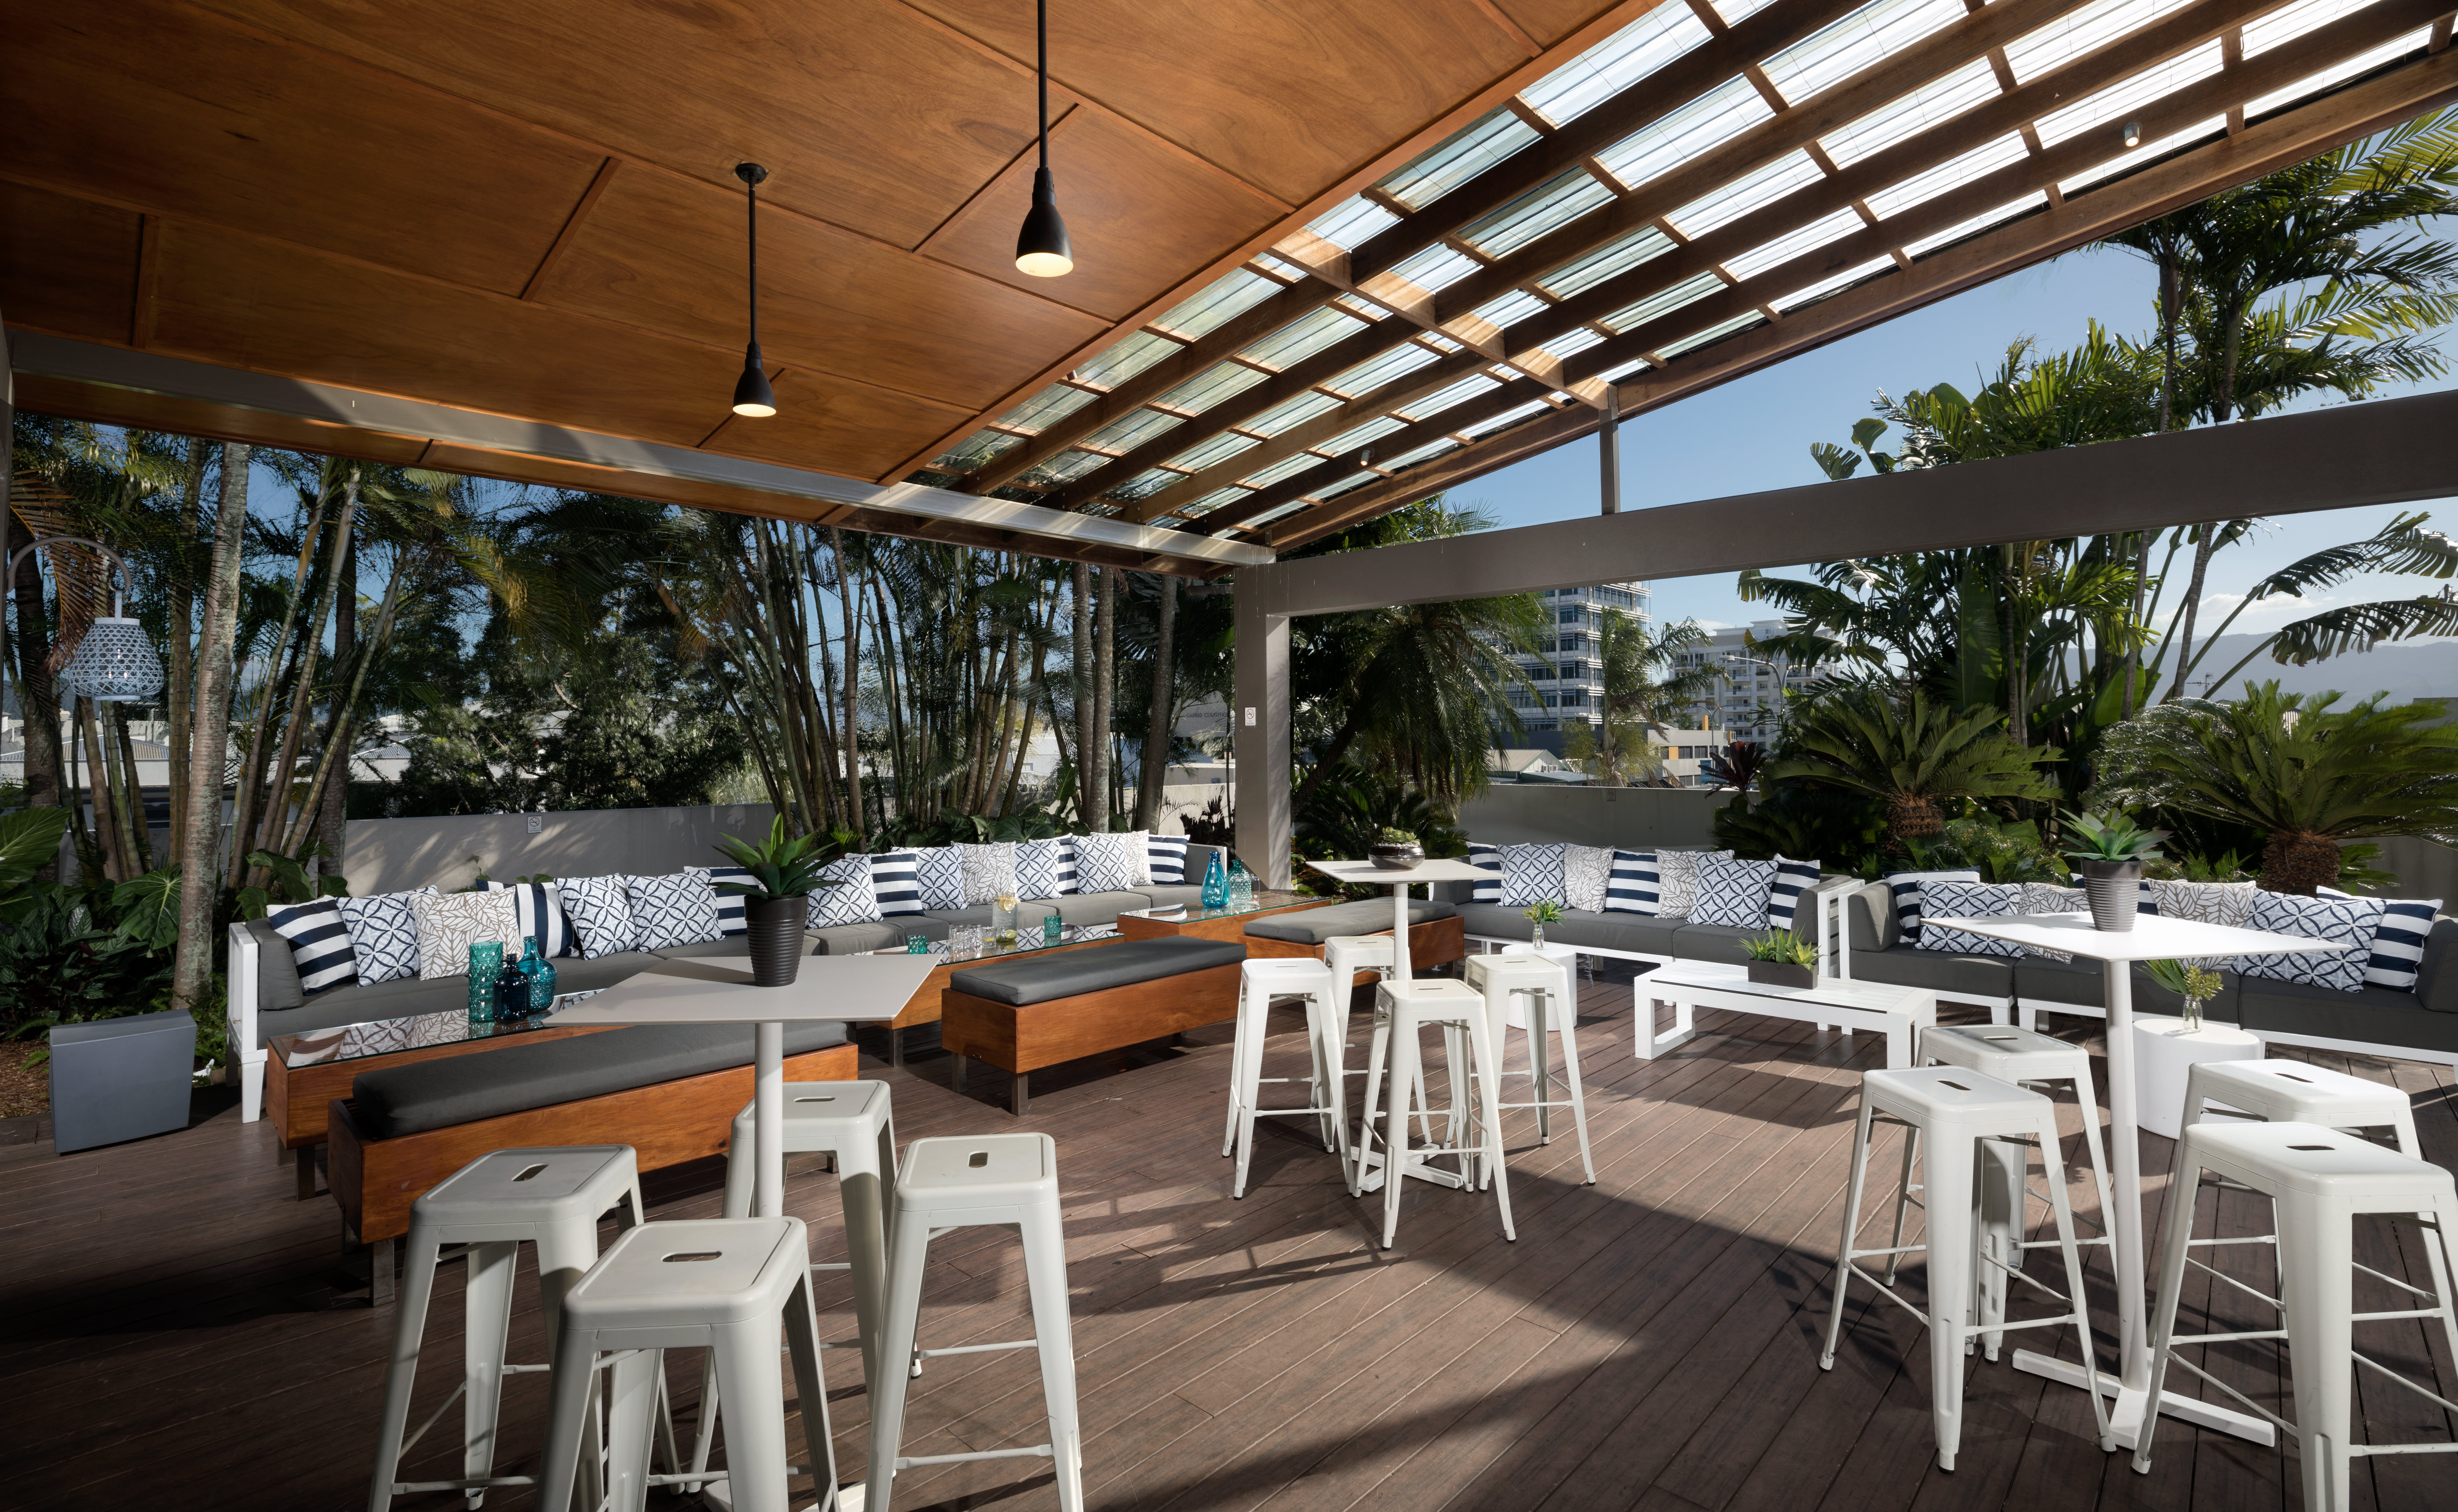 Rydges plaza cairns venue hire enquire and book today